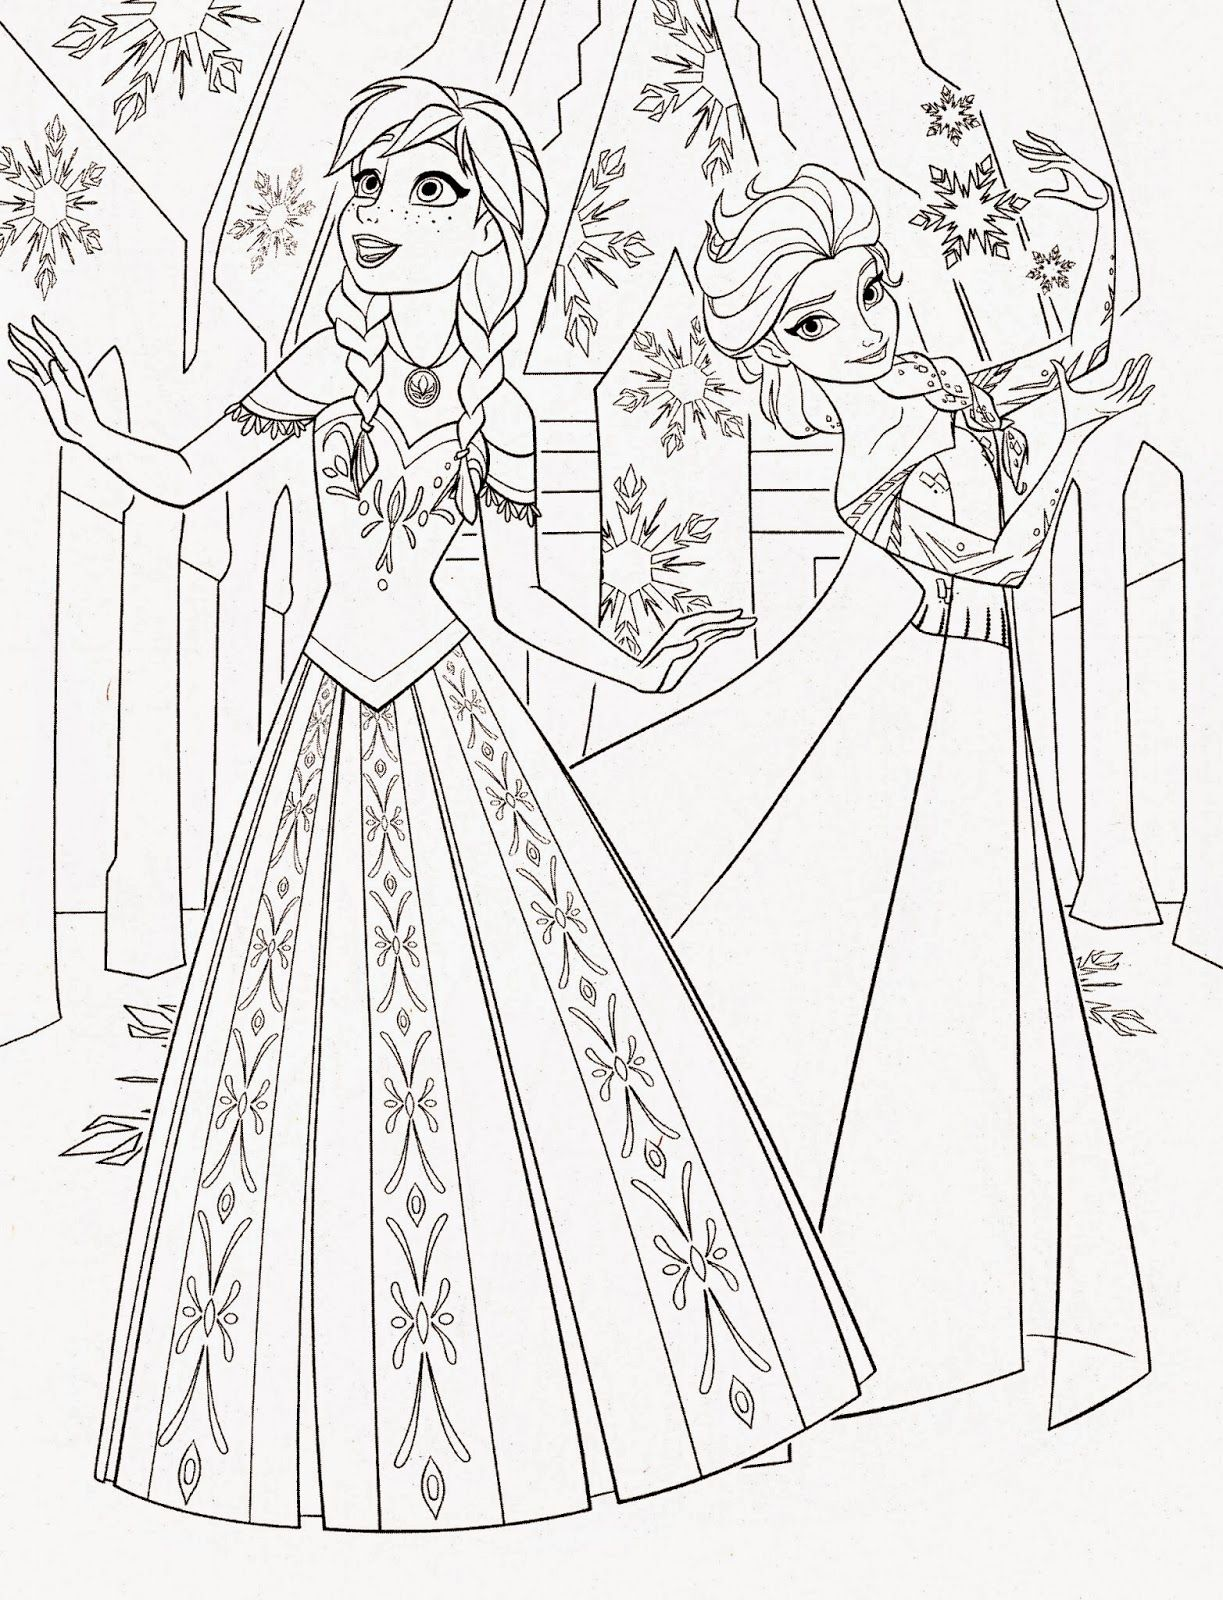 Frozen Anna And Elsa Coloring Pages - Coloring Home